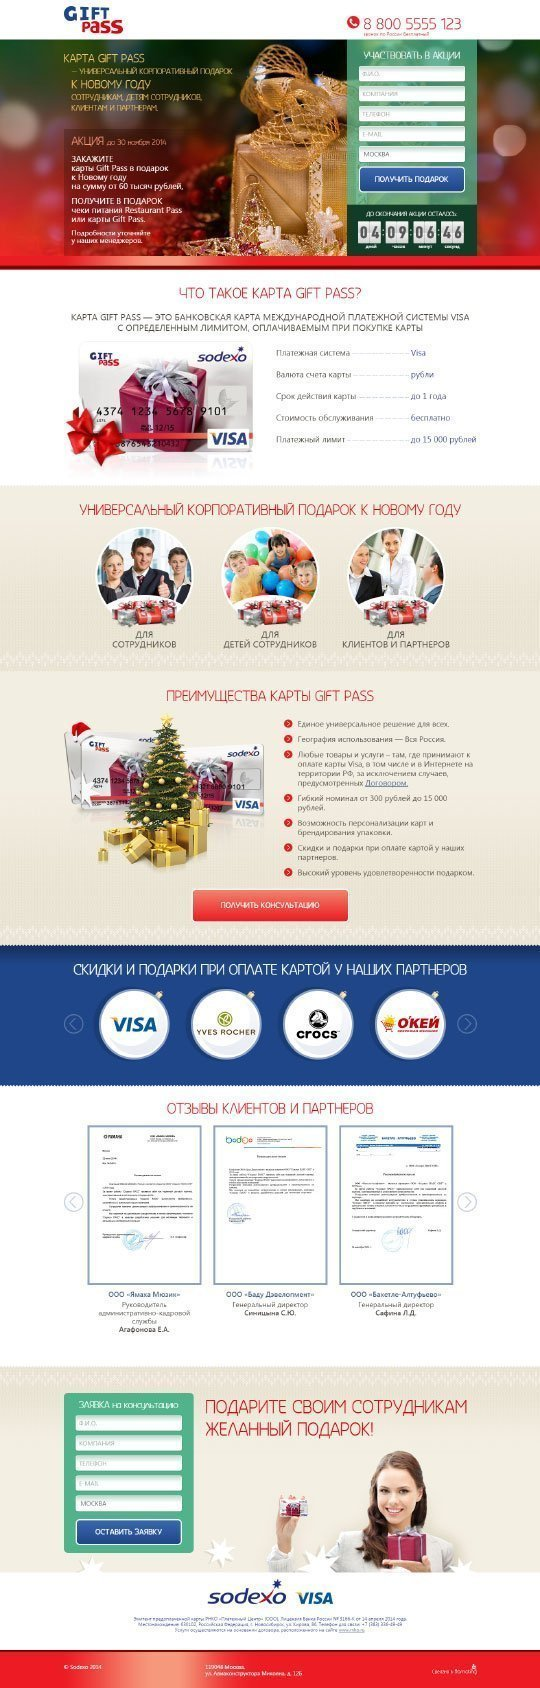 Giftpass New Year 2015